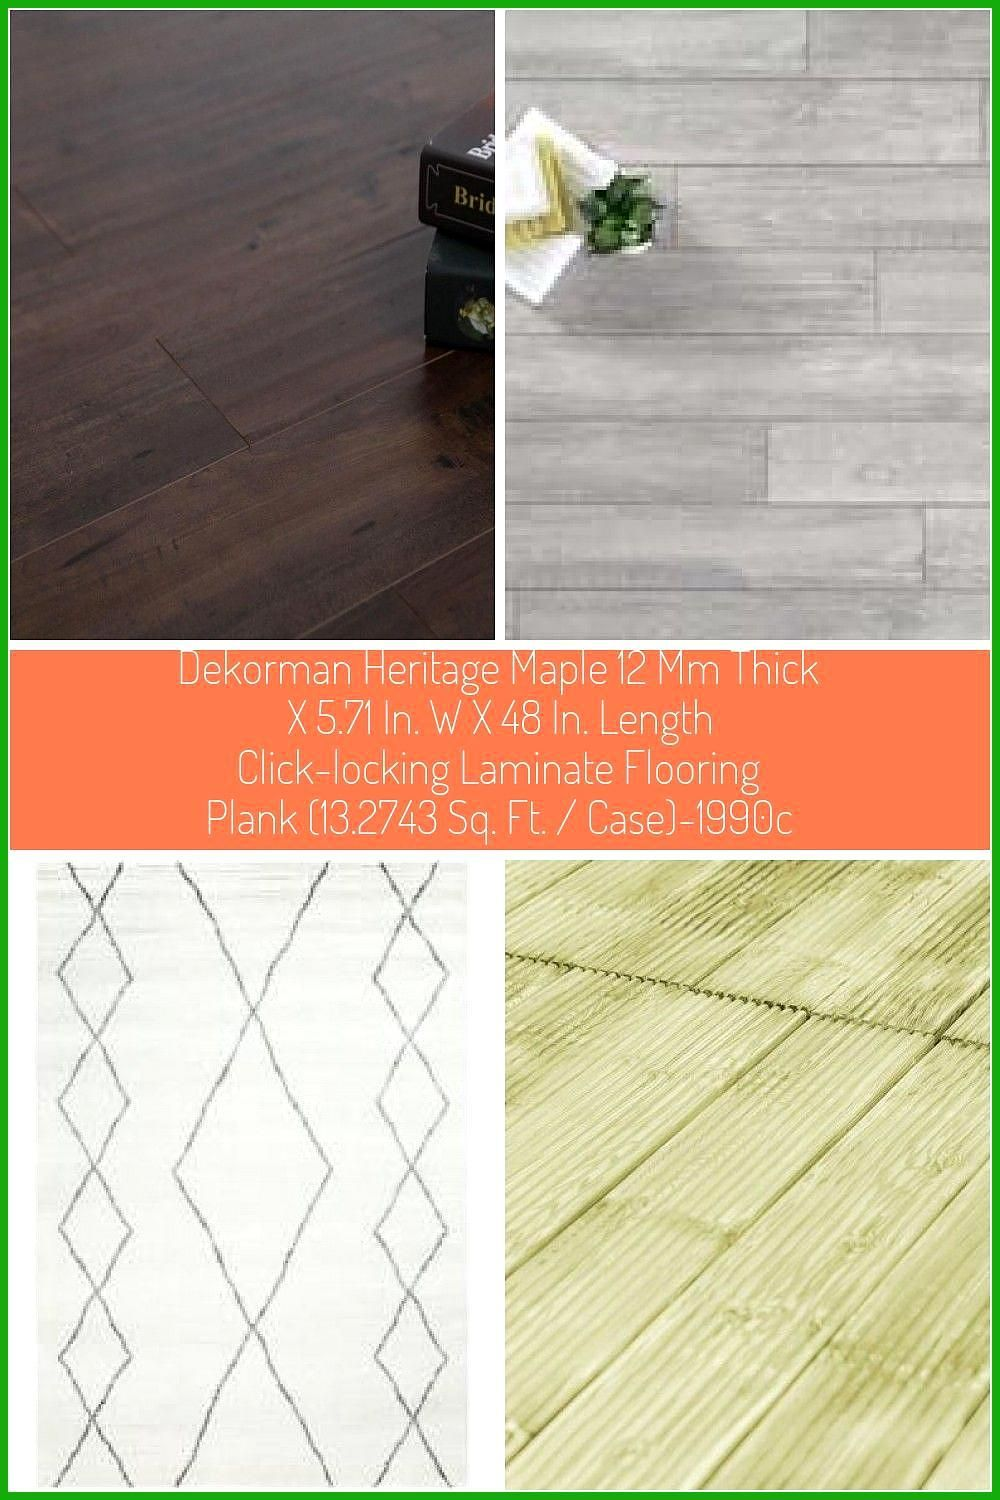 Dekorman Heritage Maple 12 Mm Thick X 5 71 In W X 48 In Length Click Locking Laminate Flooring Plank 13 2743 Sq Ft Case He In 2020 Laminate Flooring Flooring Laminate